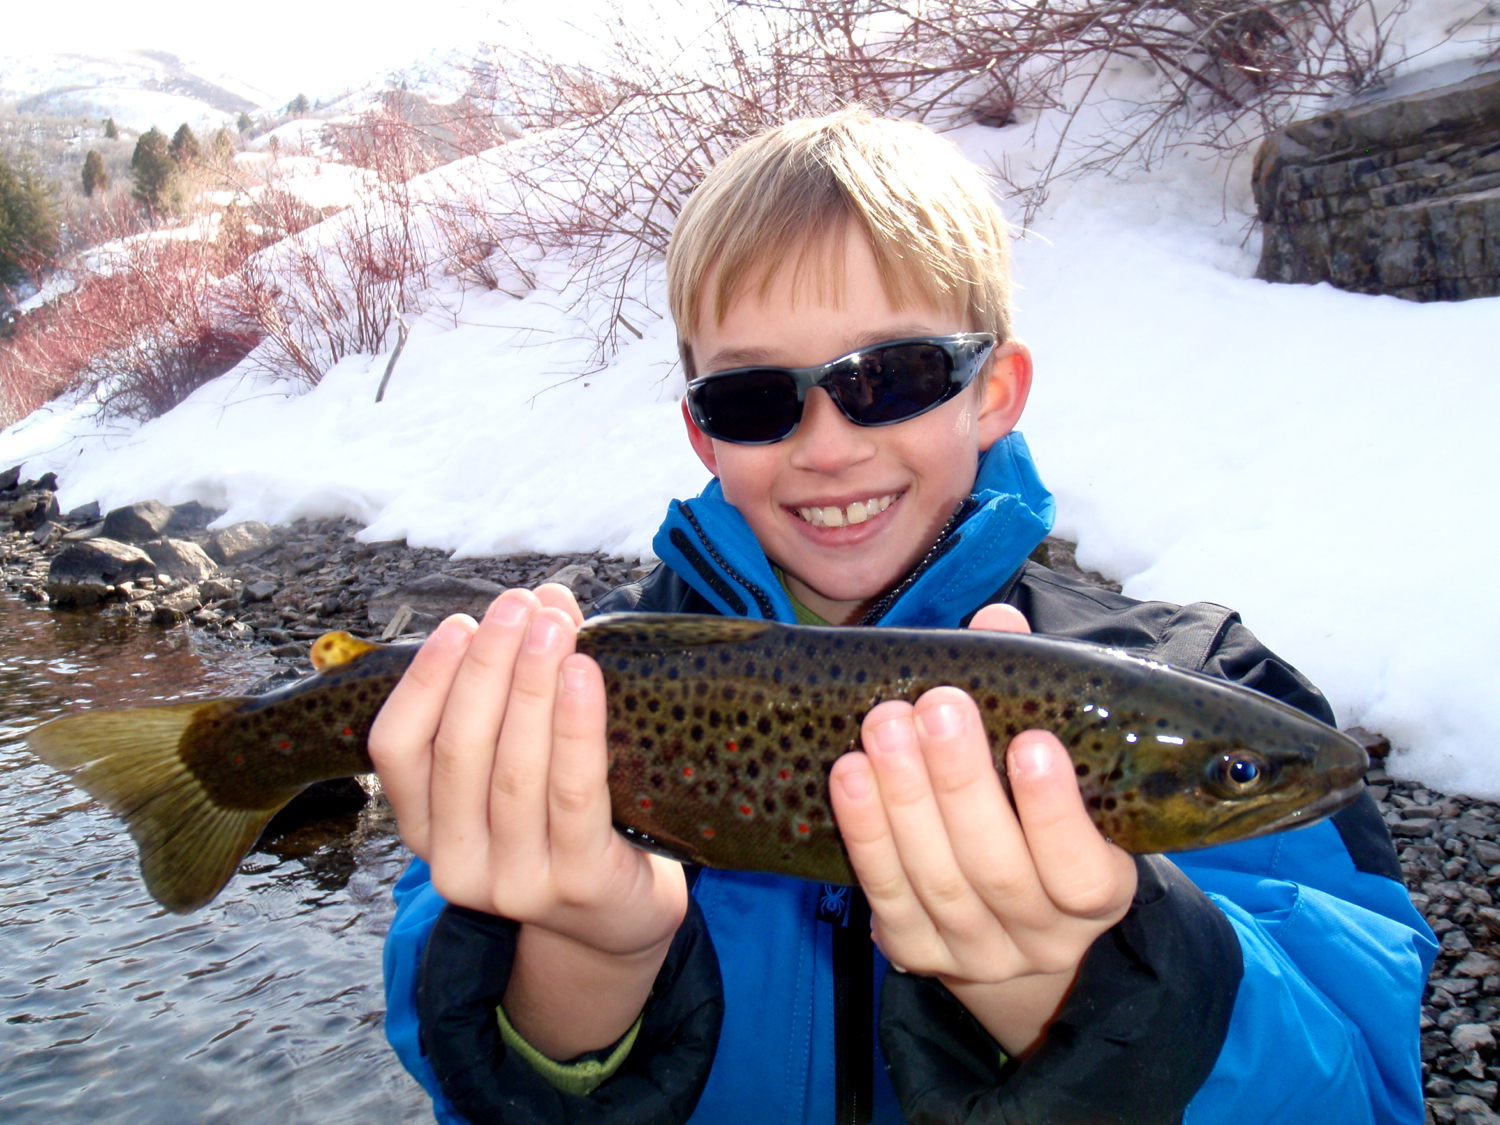 Fly Fishing on the Lower Provo in January